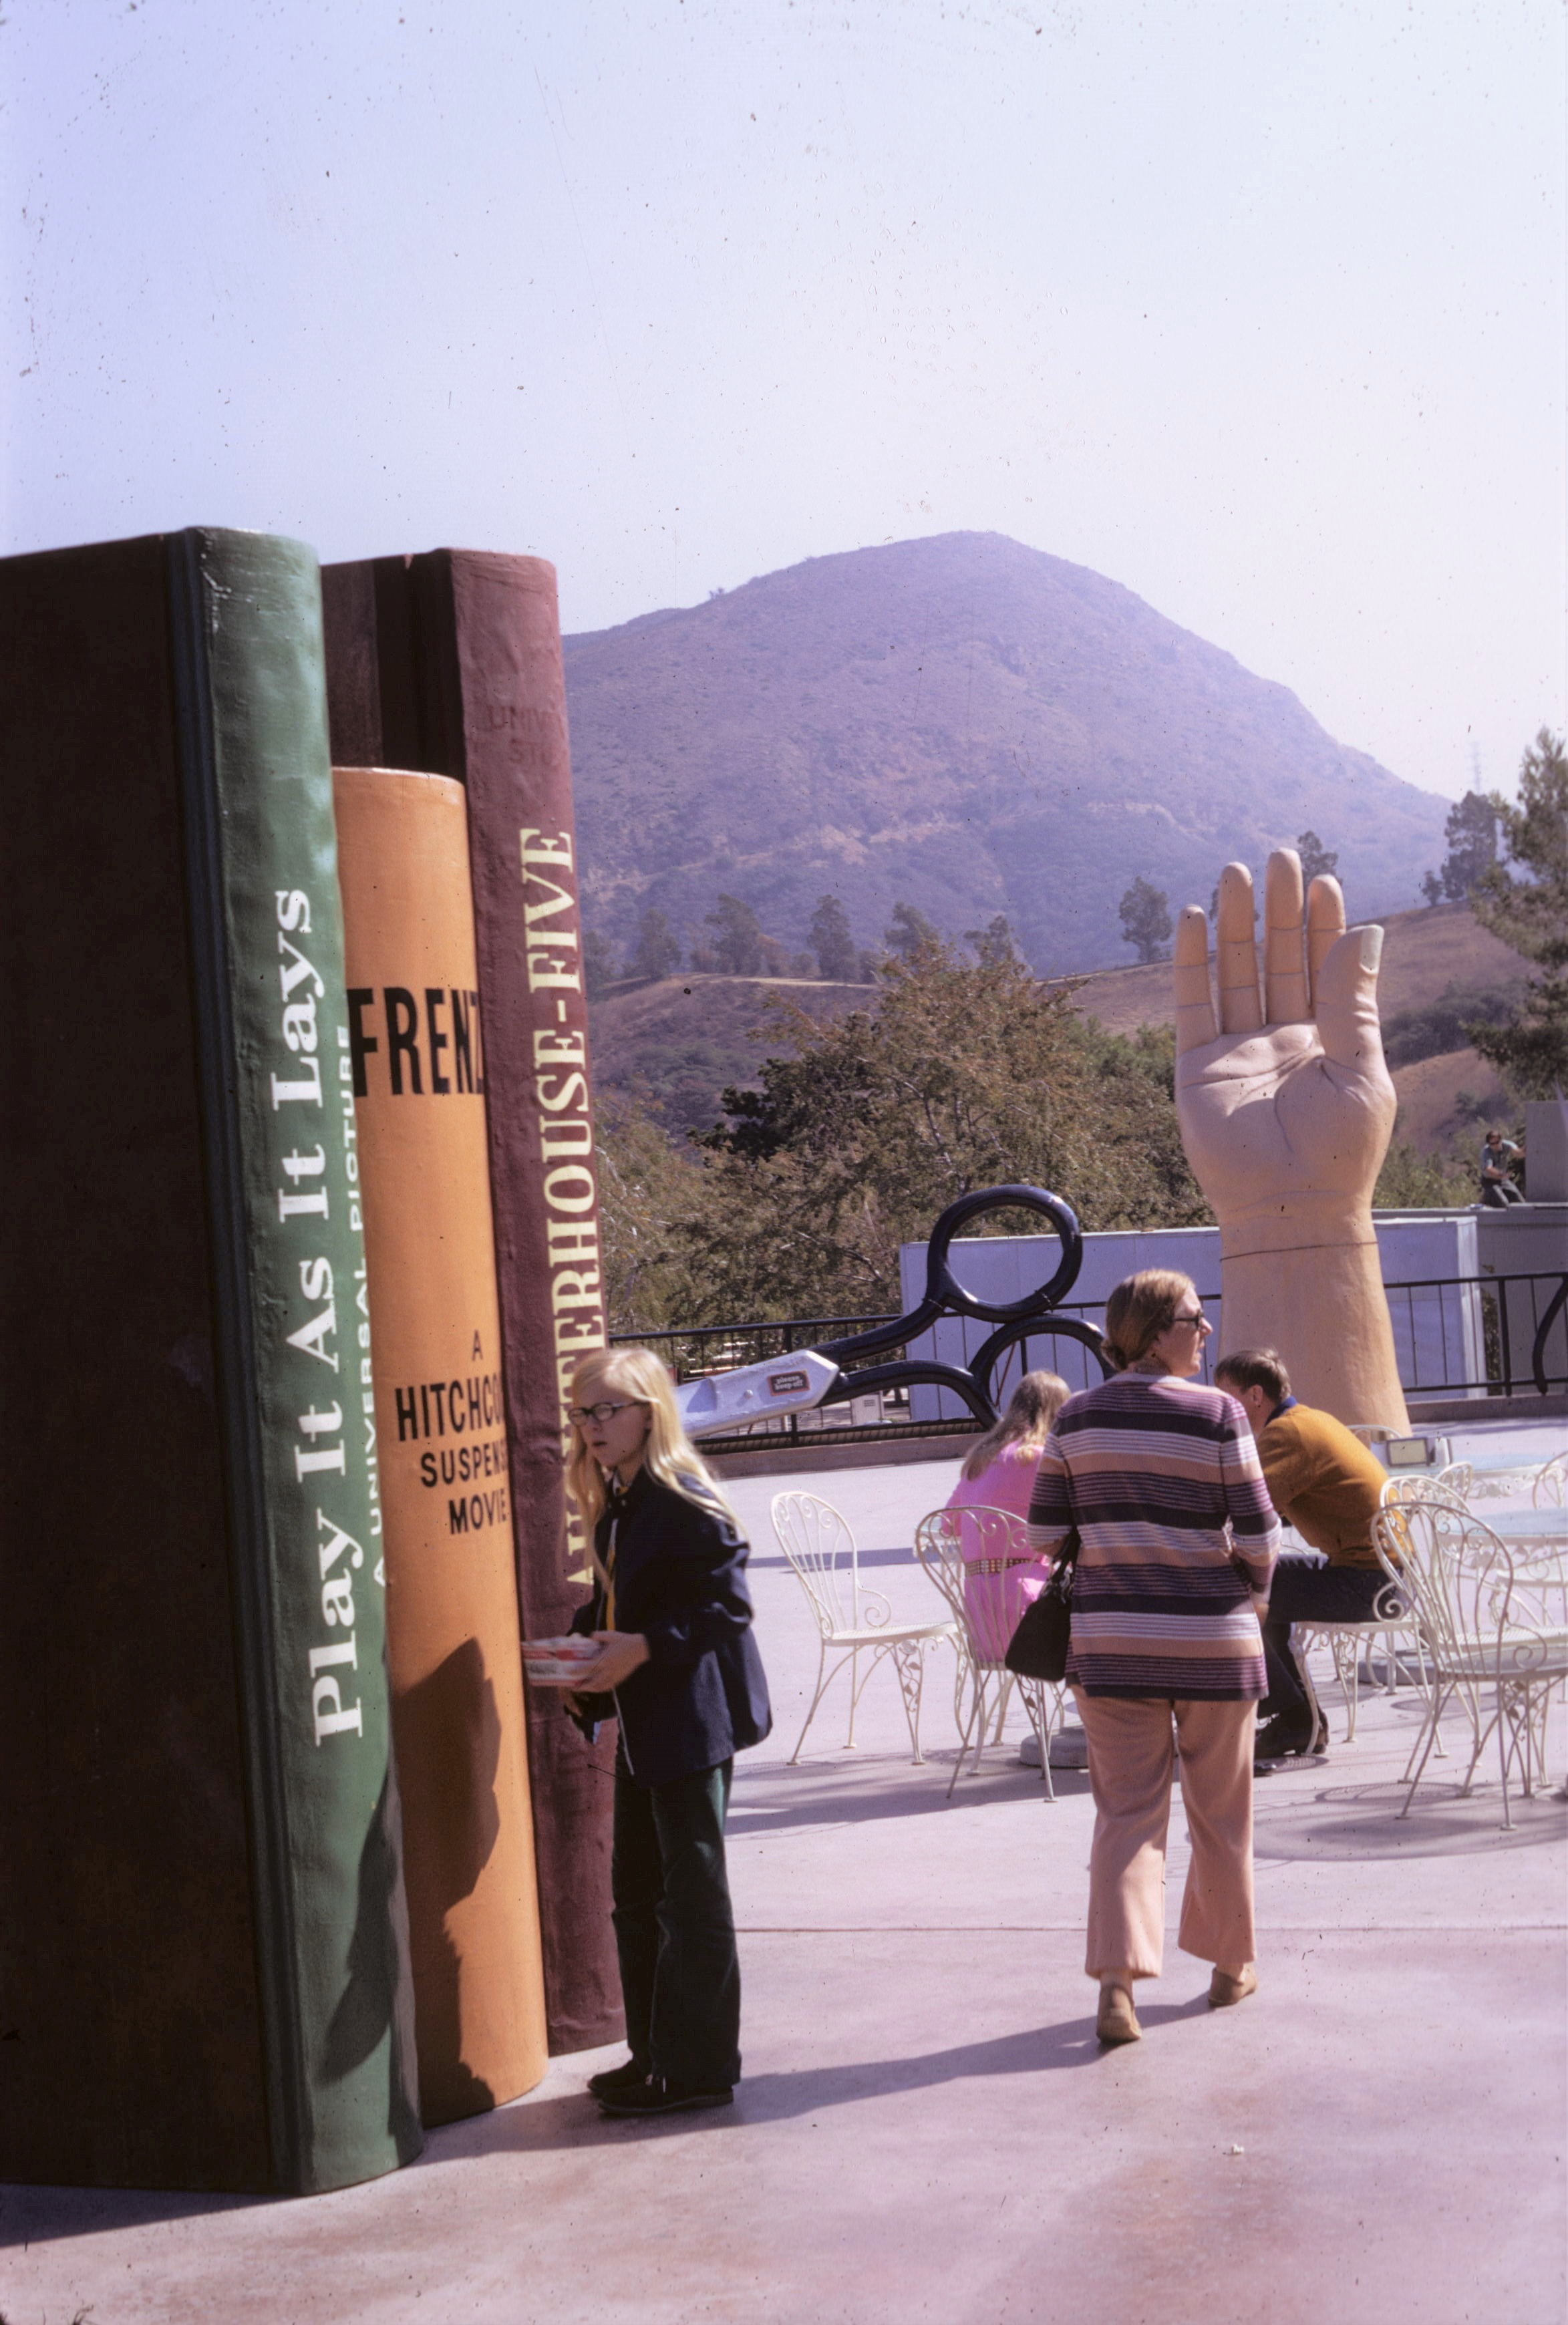 Universal Studios 1972 - Giant Book Props - Invisible Themepark